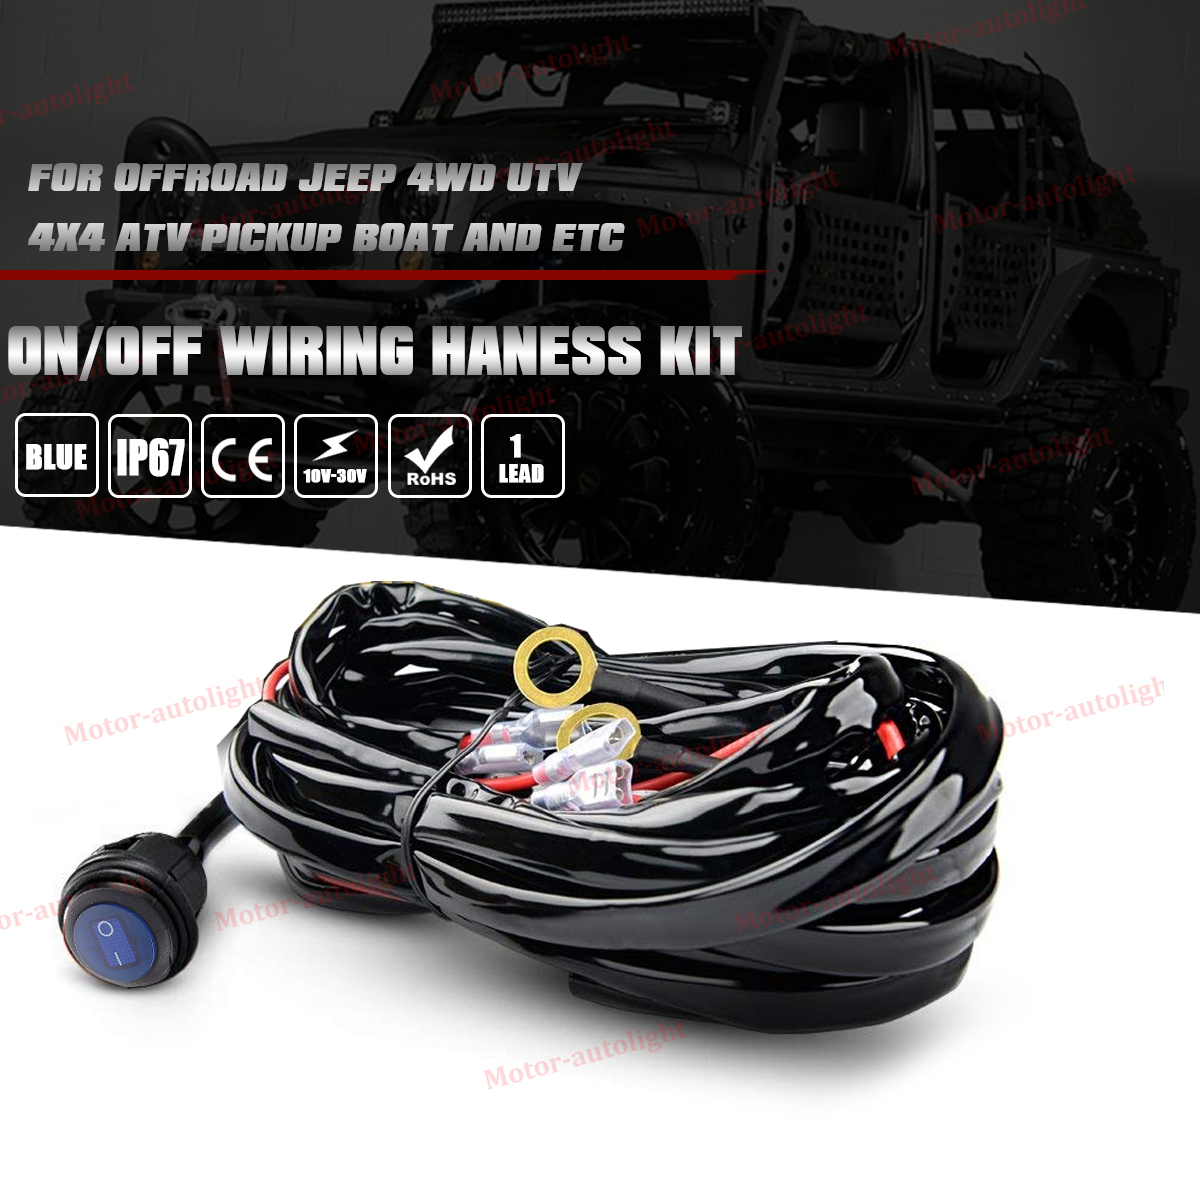 12v Toggle On Off Wiring Harness For Polaris Xp Rzr 1000 900 Ranger Exposed Light Bar